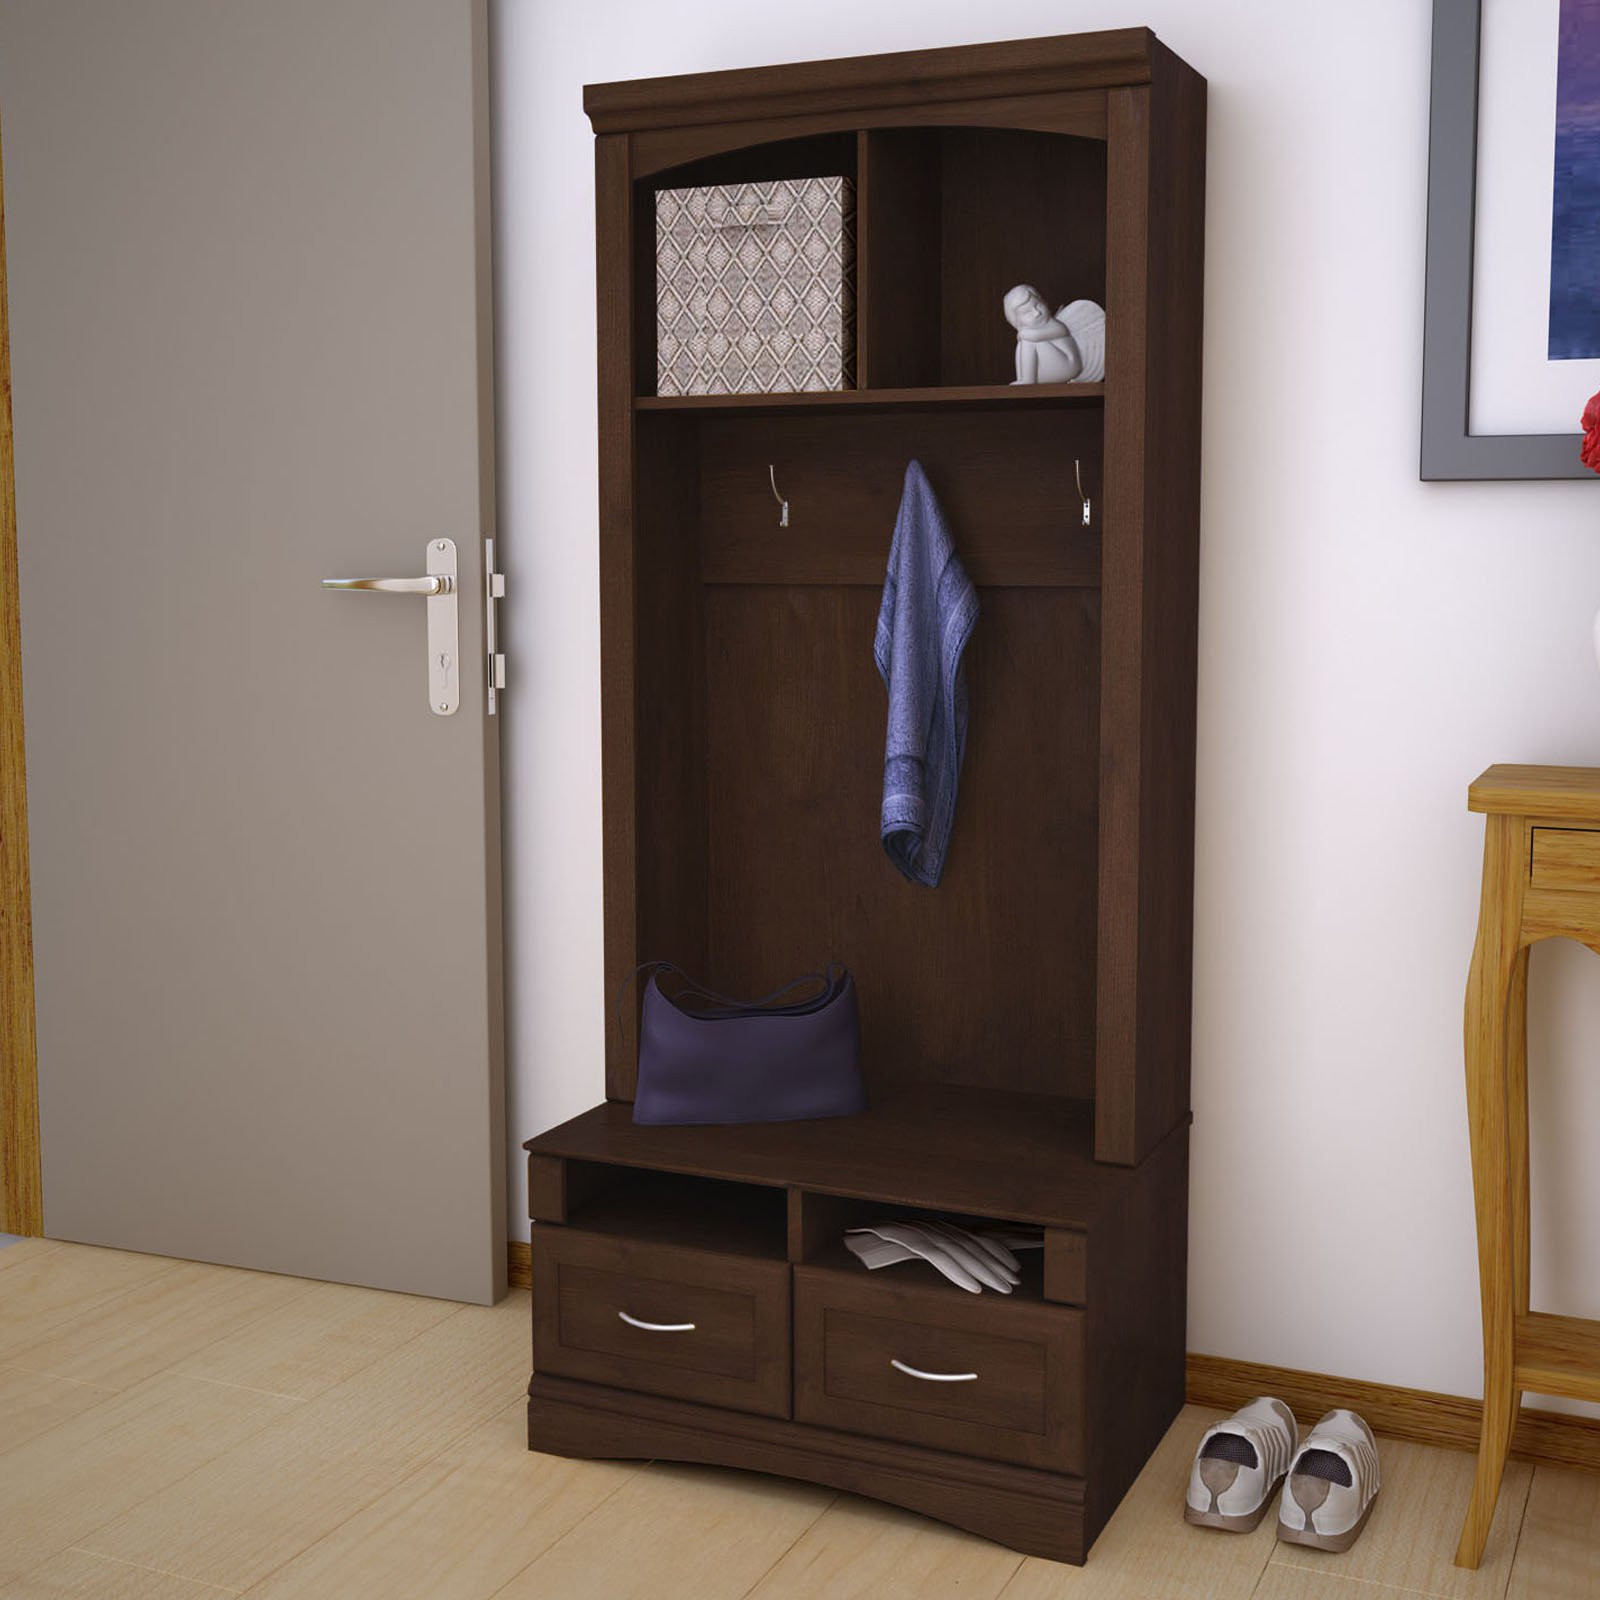 Best ideas about Entryway Bench With Hooks . Save or Pin Entryway Bench With Storage And Hooks High — STABBEDINBACK Now.